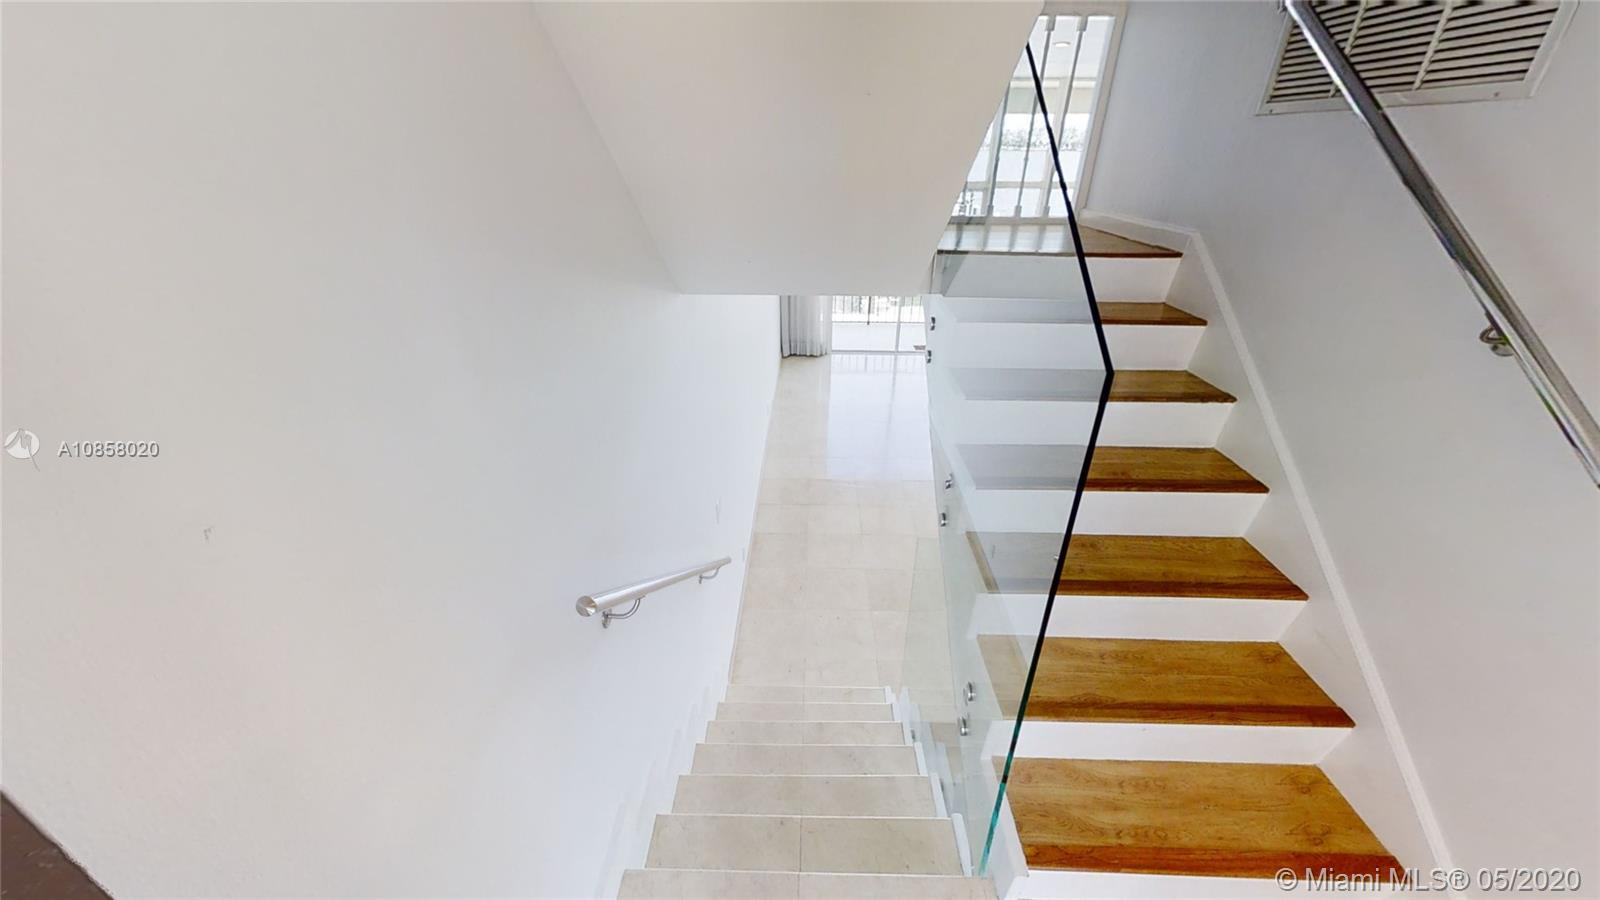 This Beautiful and Unique townhouse with amazing Biscayne Bay views and Ocean view. A 32 FT boat slip. Recently remodeled with all modern upgrades one would expect. Kitchen remodeled with white quartz counter top. Master bedroom has walk-in closet. Floor to ceiling windows. Storm shutters. Brand new A/C Unit. Direct and private access to unit. Two private covered parking spaces in front of the TownHouse. It is like living in a home but with all the luxurious condominium amenities. 24 hour security, free valet, 2 pools, spa, tennis courts, BBQ areas, Children play ground, bay walkway, gym, centrally located, walking distance to Mary Brickell Village, Brickell City Center and Financial Institutions. Centrally located to airport, malls, south beach, art center, Arena and more . A dream Home